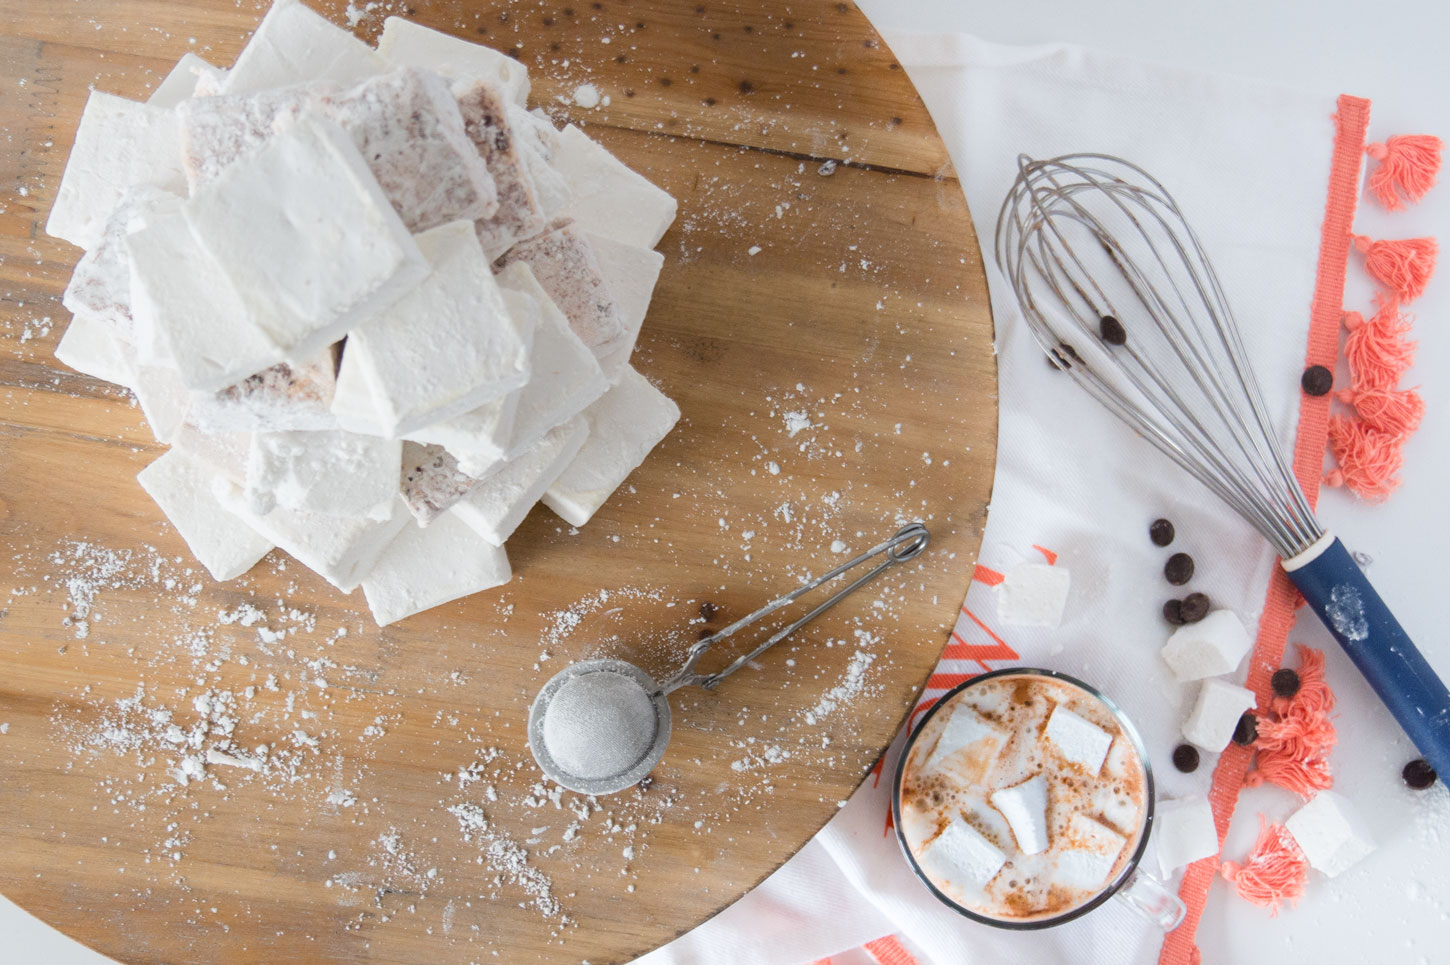 How To Make From Scratch Marshmallows